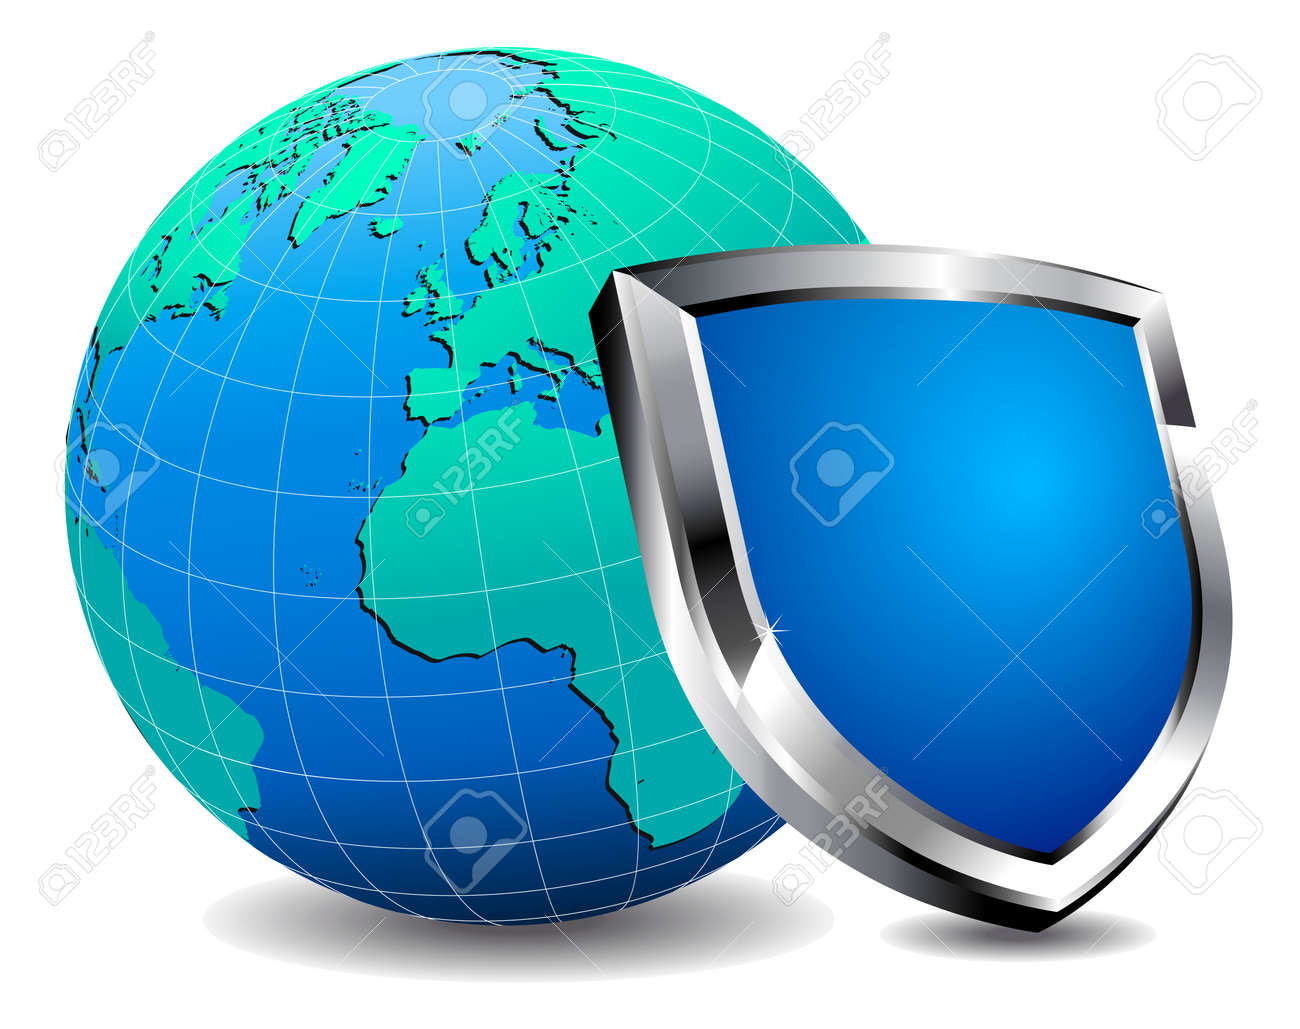 Protection Shield firewall Stock Vector - 9340490